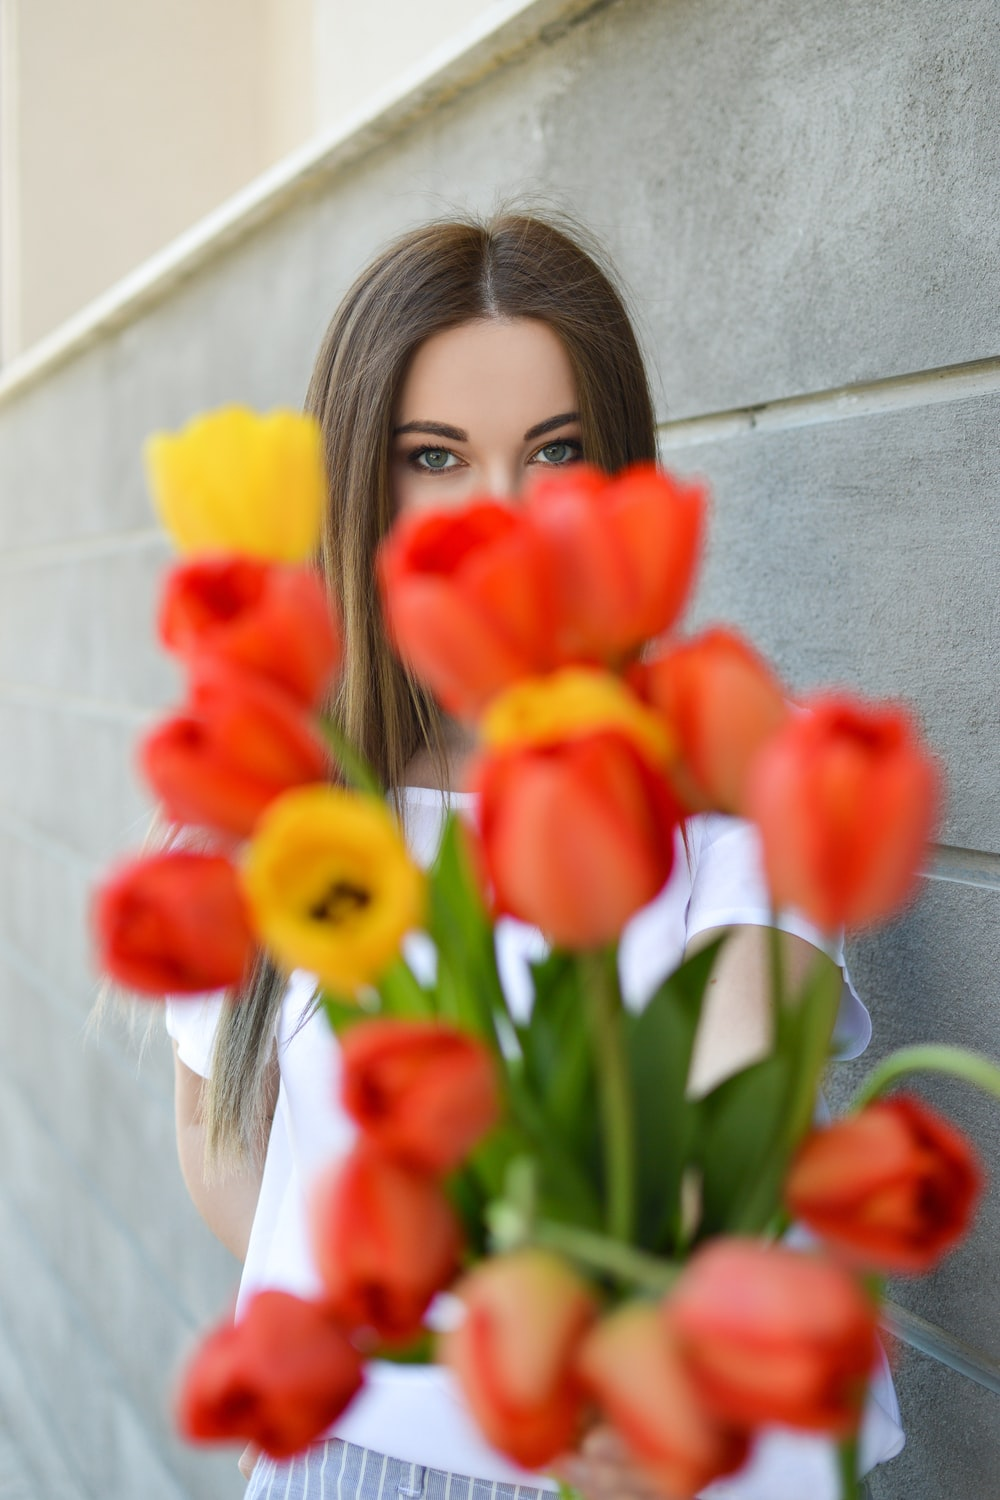 woman holding orange and yellow flowers